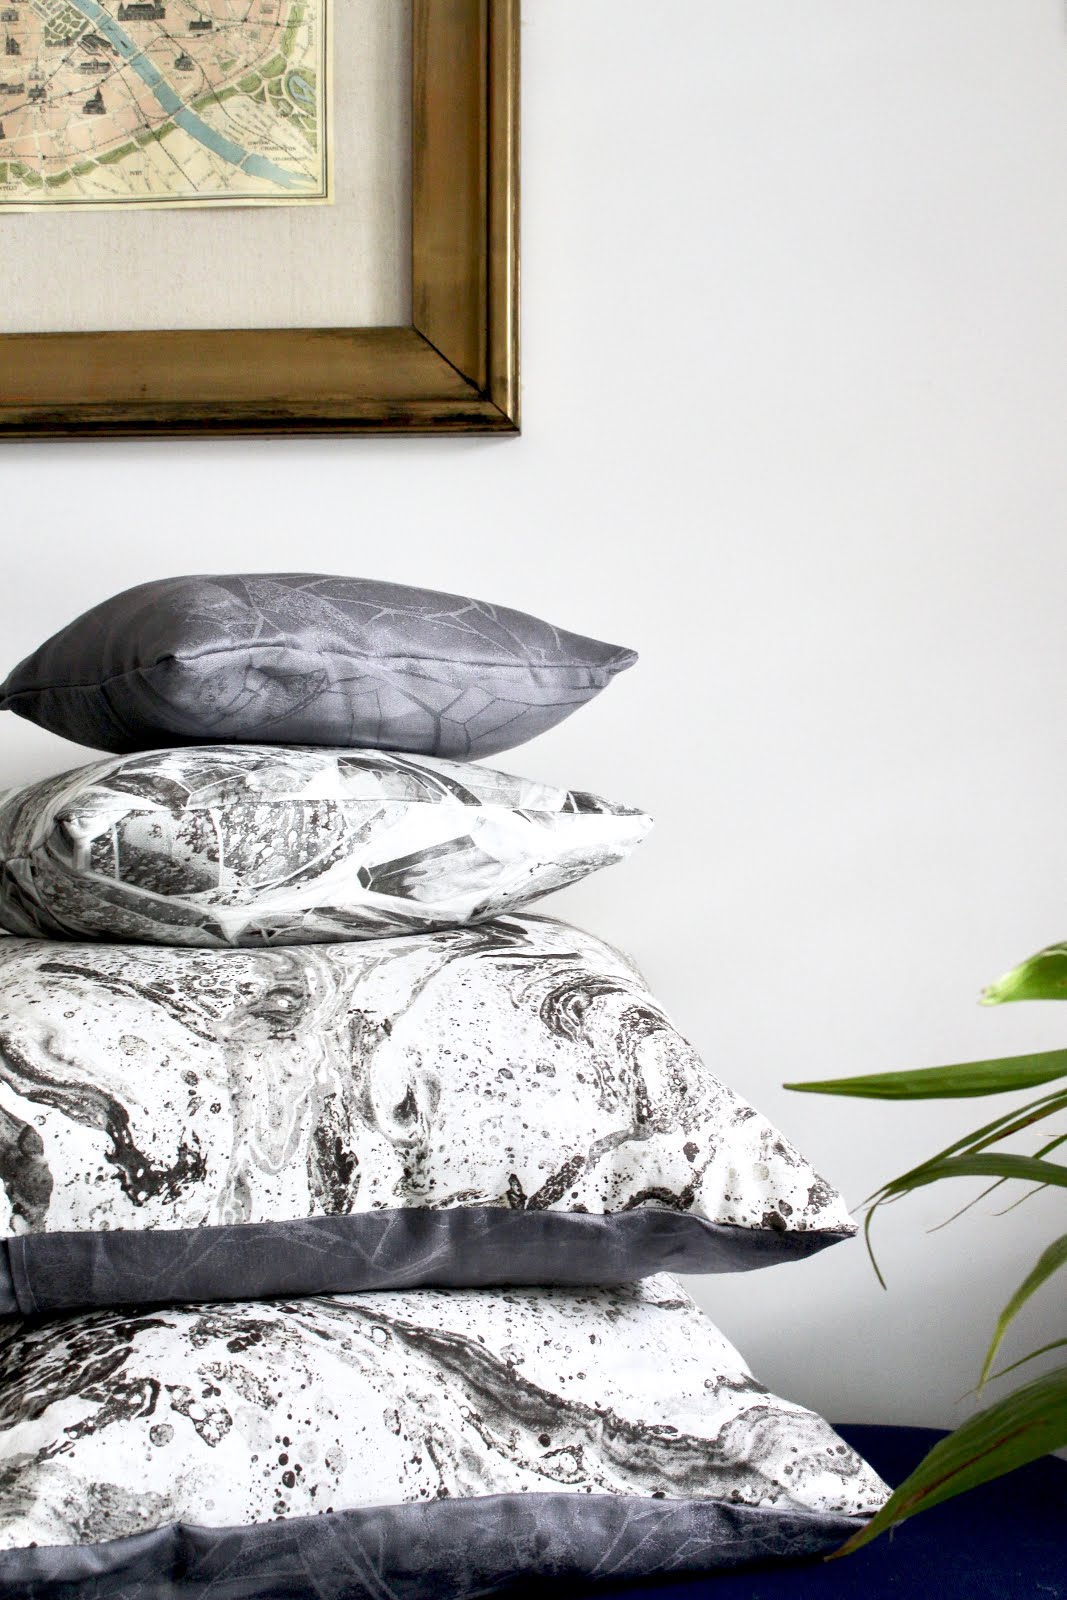 La maison jolie earthed fabrics inspired by nature for Au maison fabric